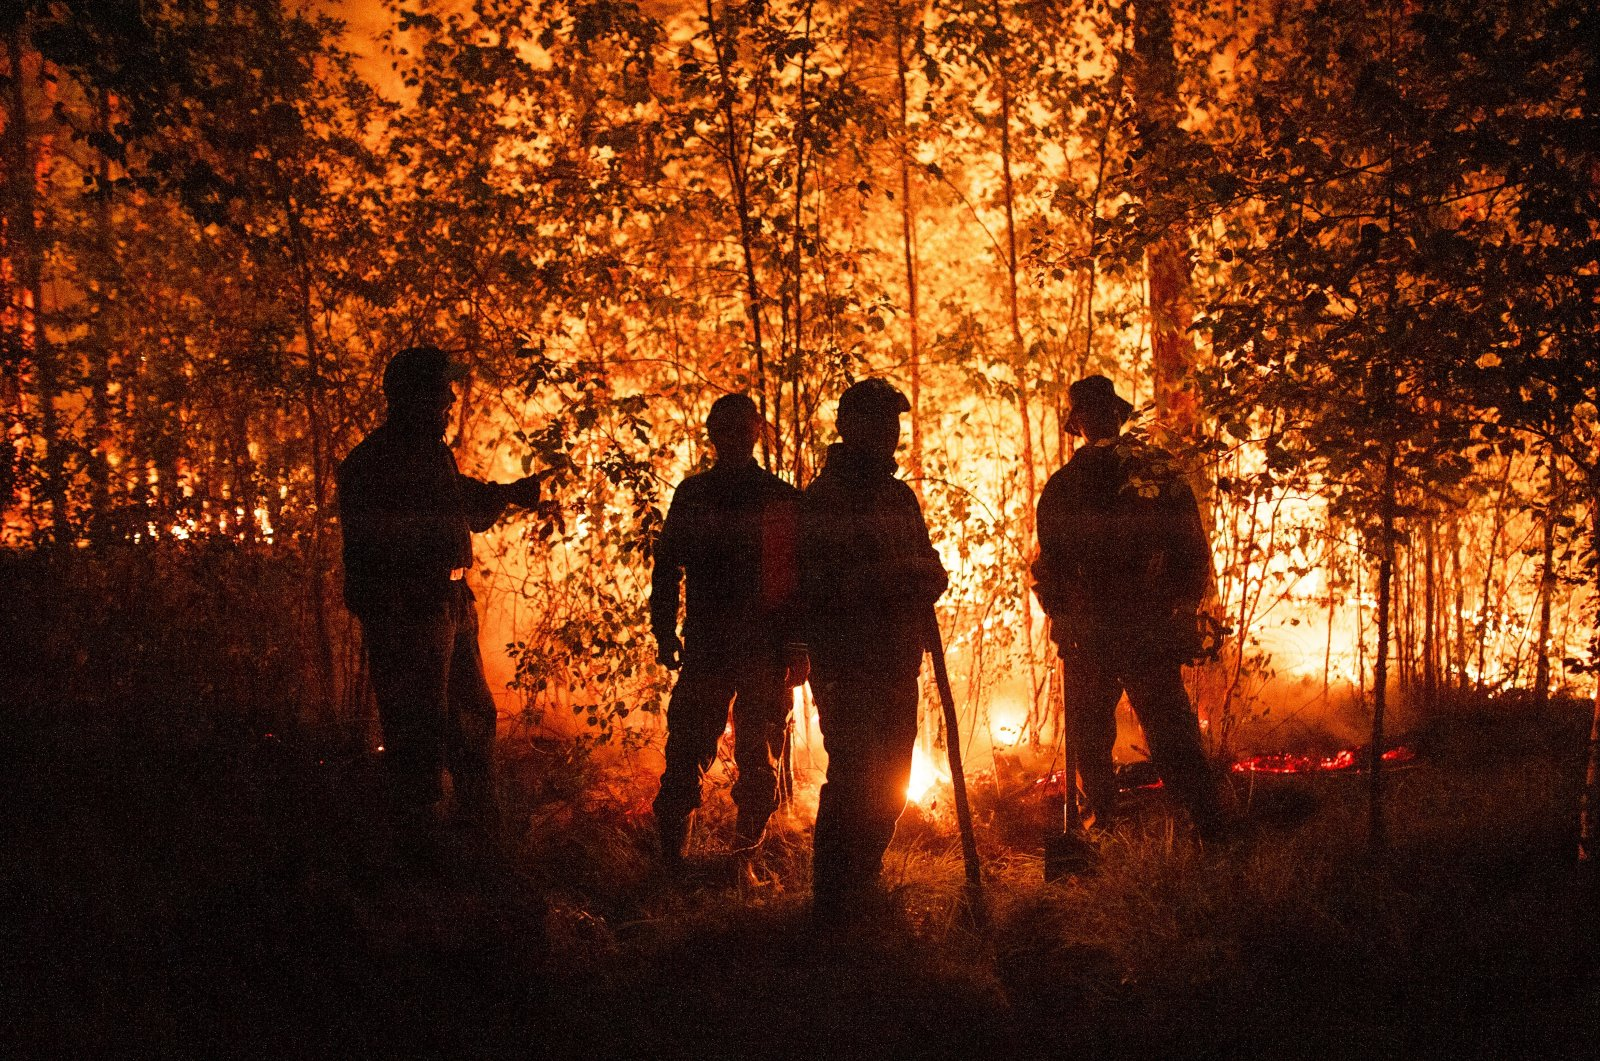 Firefighters work at the scene of a forest fire near Kyuyorelyakh village in Gorny Ulus, west of Yakutsk, in Russia, Aug. 5, 2021. (AP Photo)